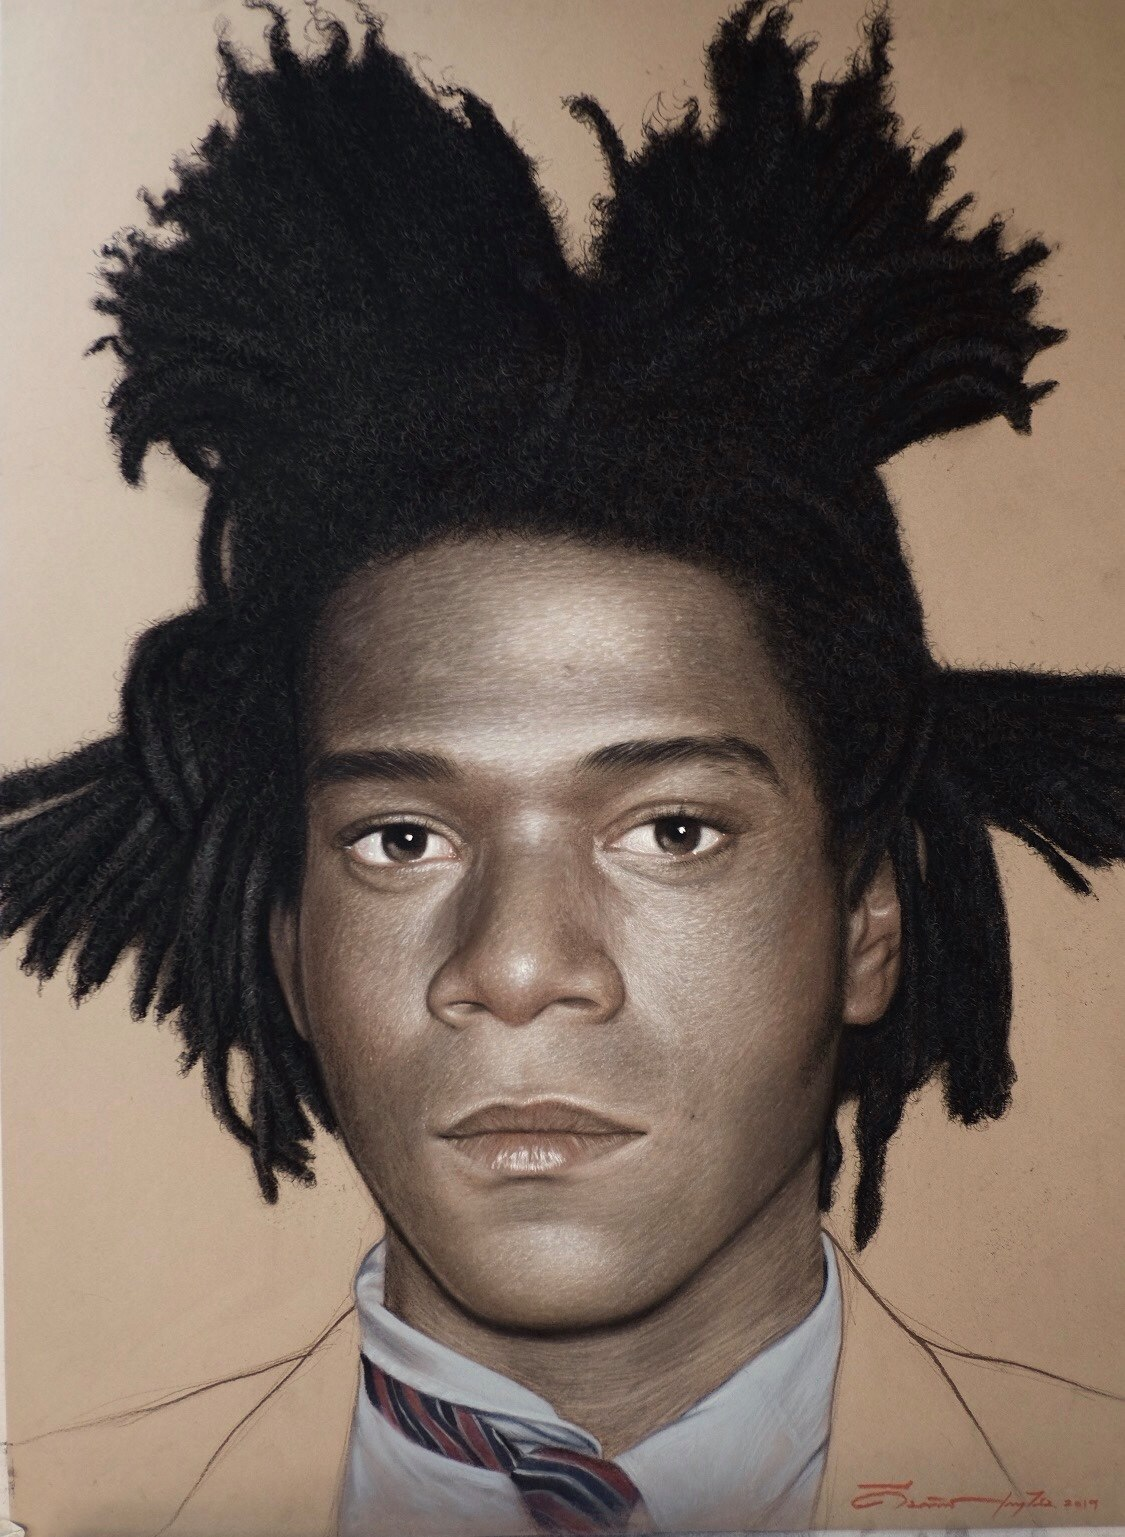 Jean-Michel Basquiat Size 75 x 55 cm Chacoal and Pastel on Paper (SOLD) 2019